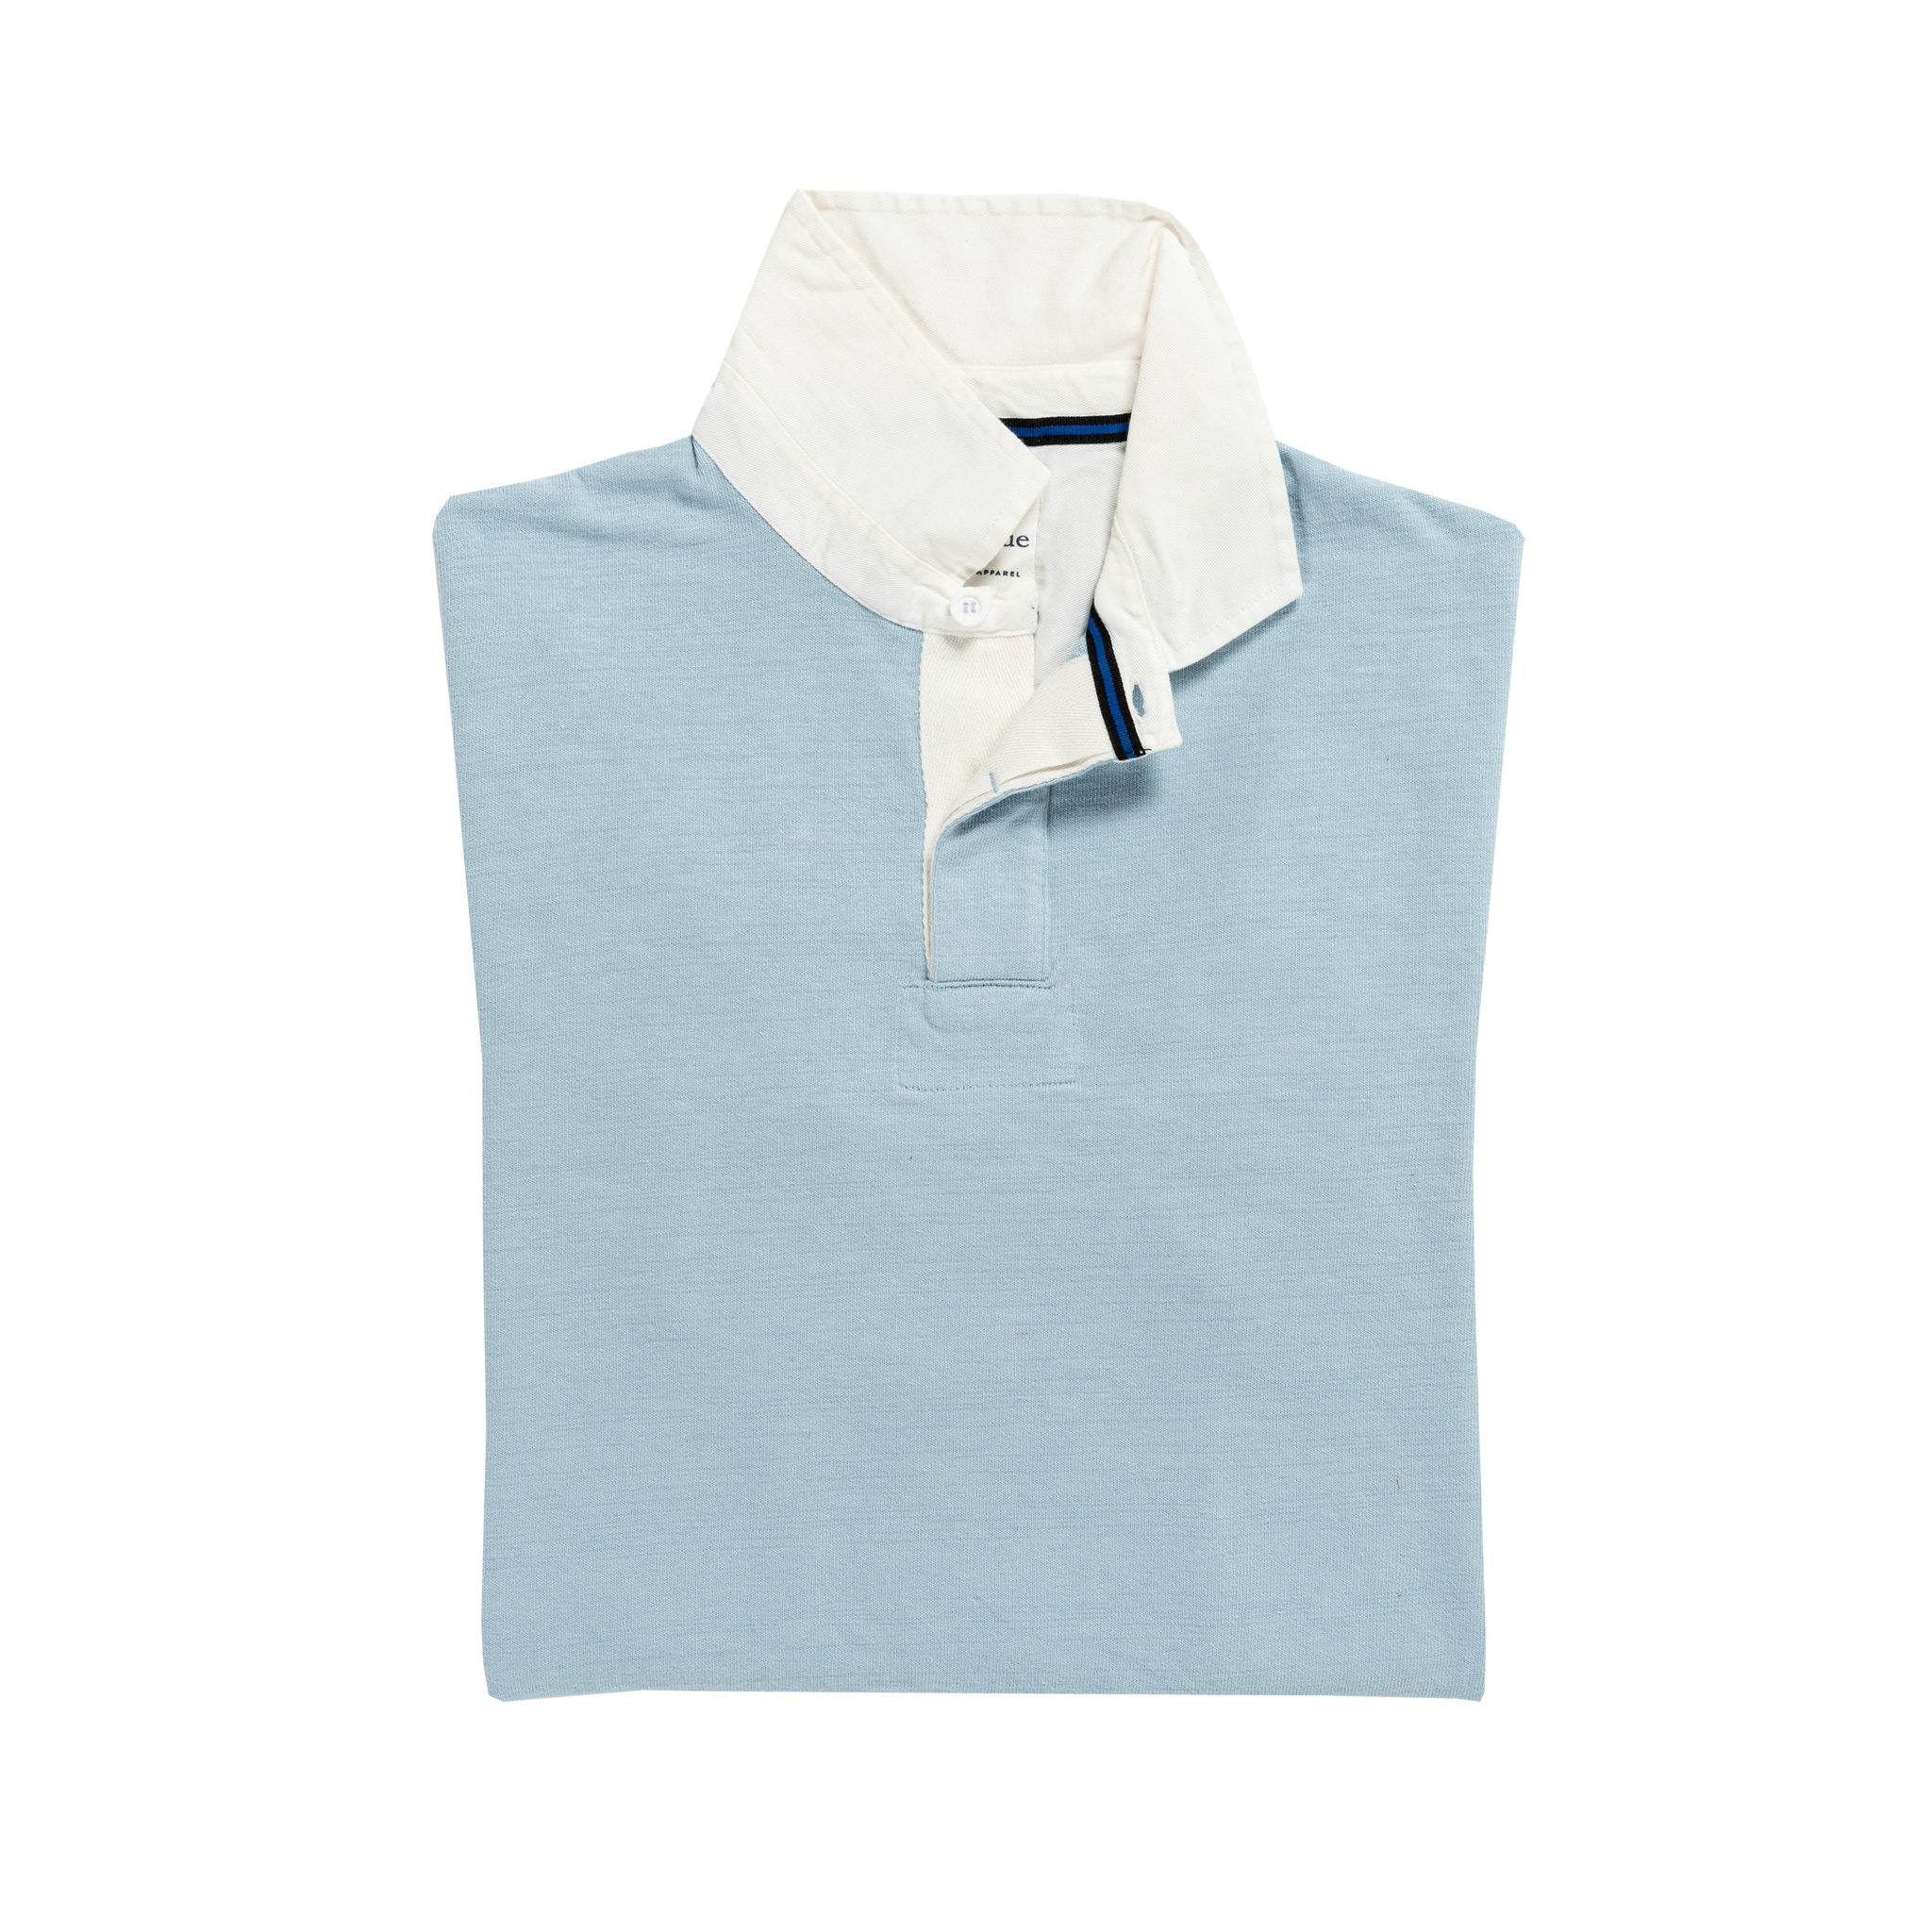 Classic Sky Blue 1871 Vintage Rugby Shirt